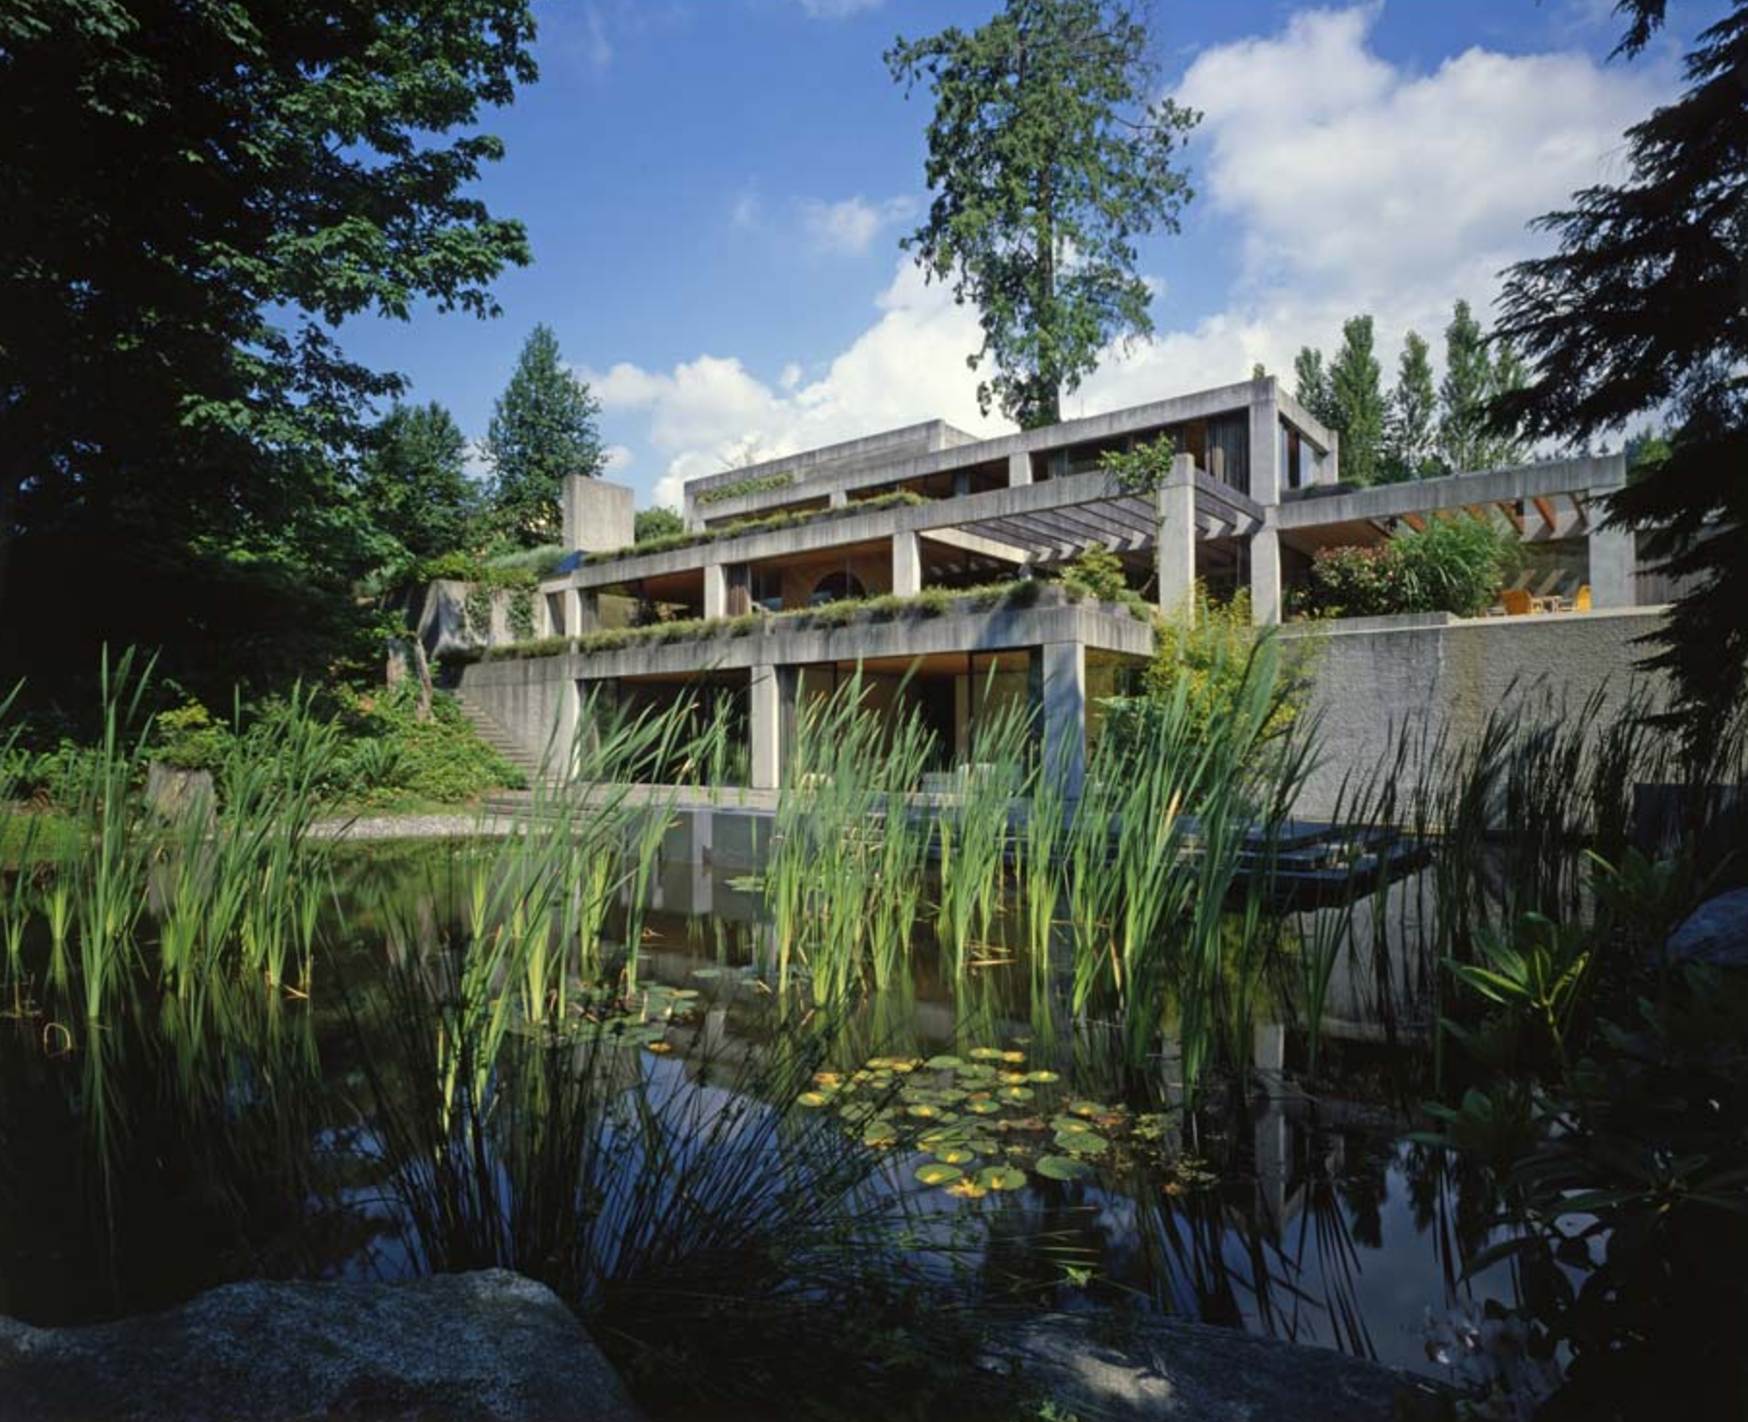 Helmut and Hildegard Eppich House - Prime Architecture London Blog 2.png